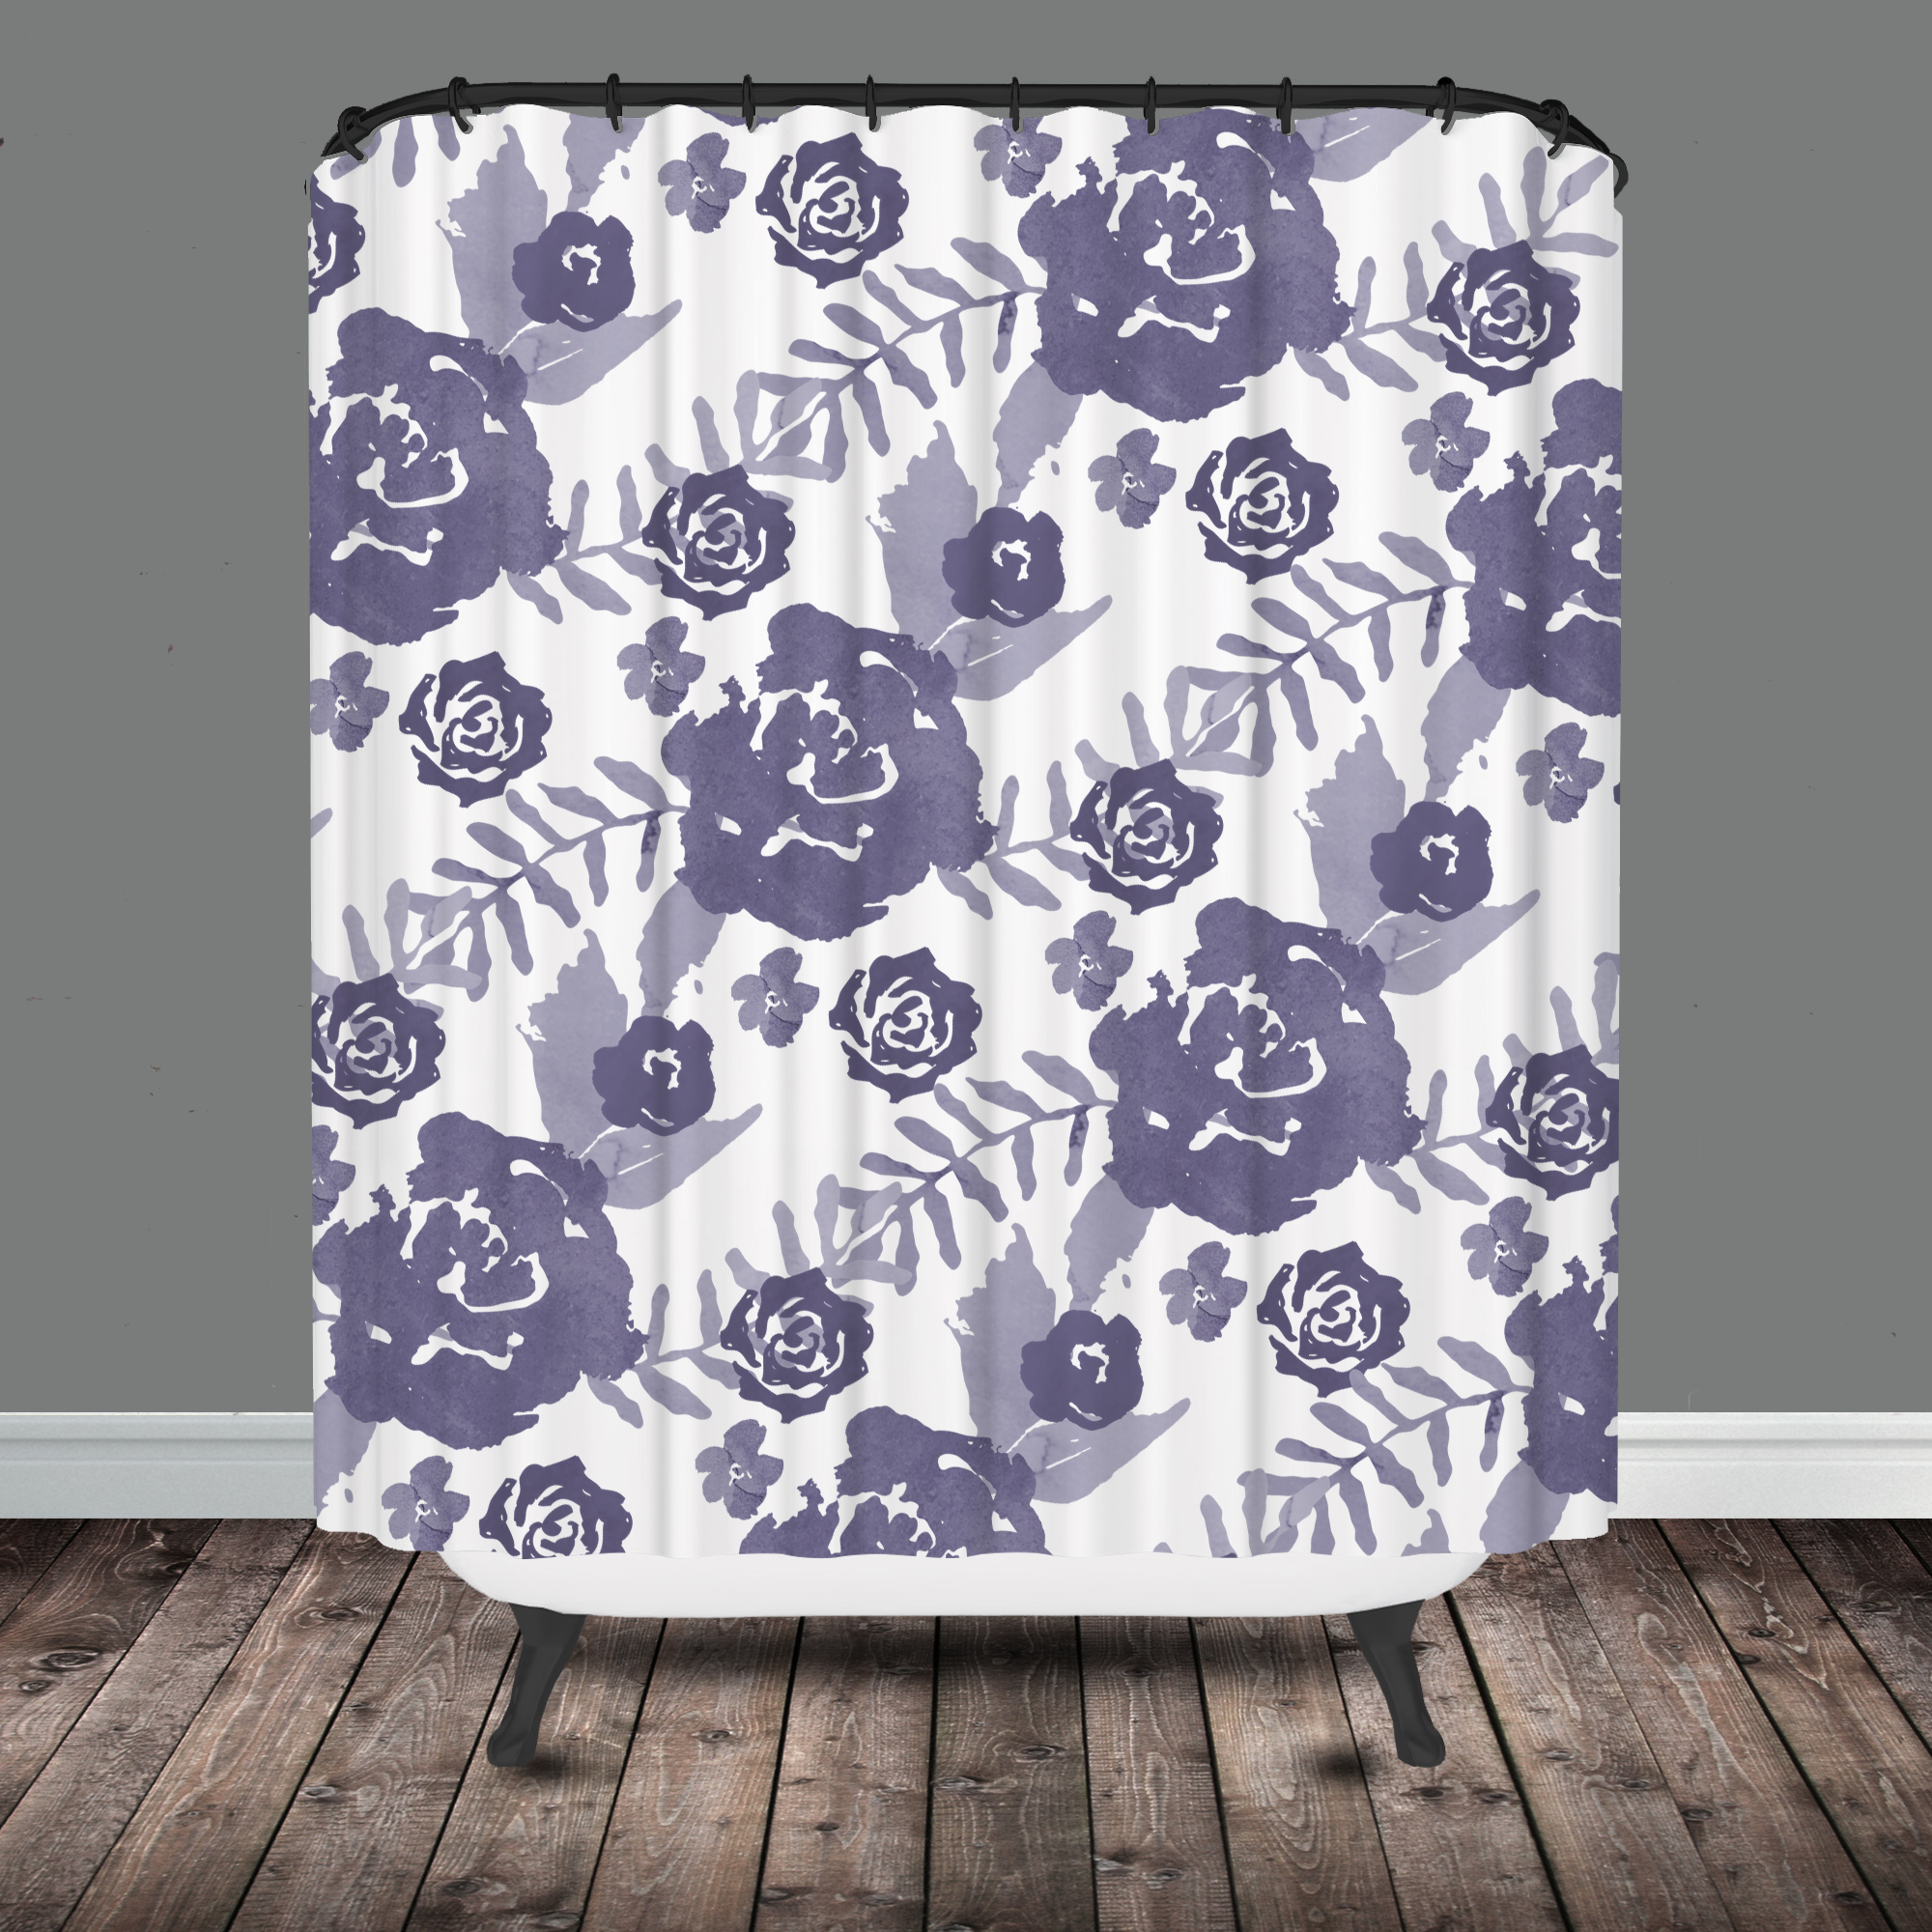 curtains most dark bathroom purple square glass rod striped window picking curtain clawfoot pattern and grey transparent support shower unique bathtub ceiling metal fabric two